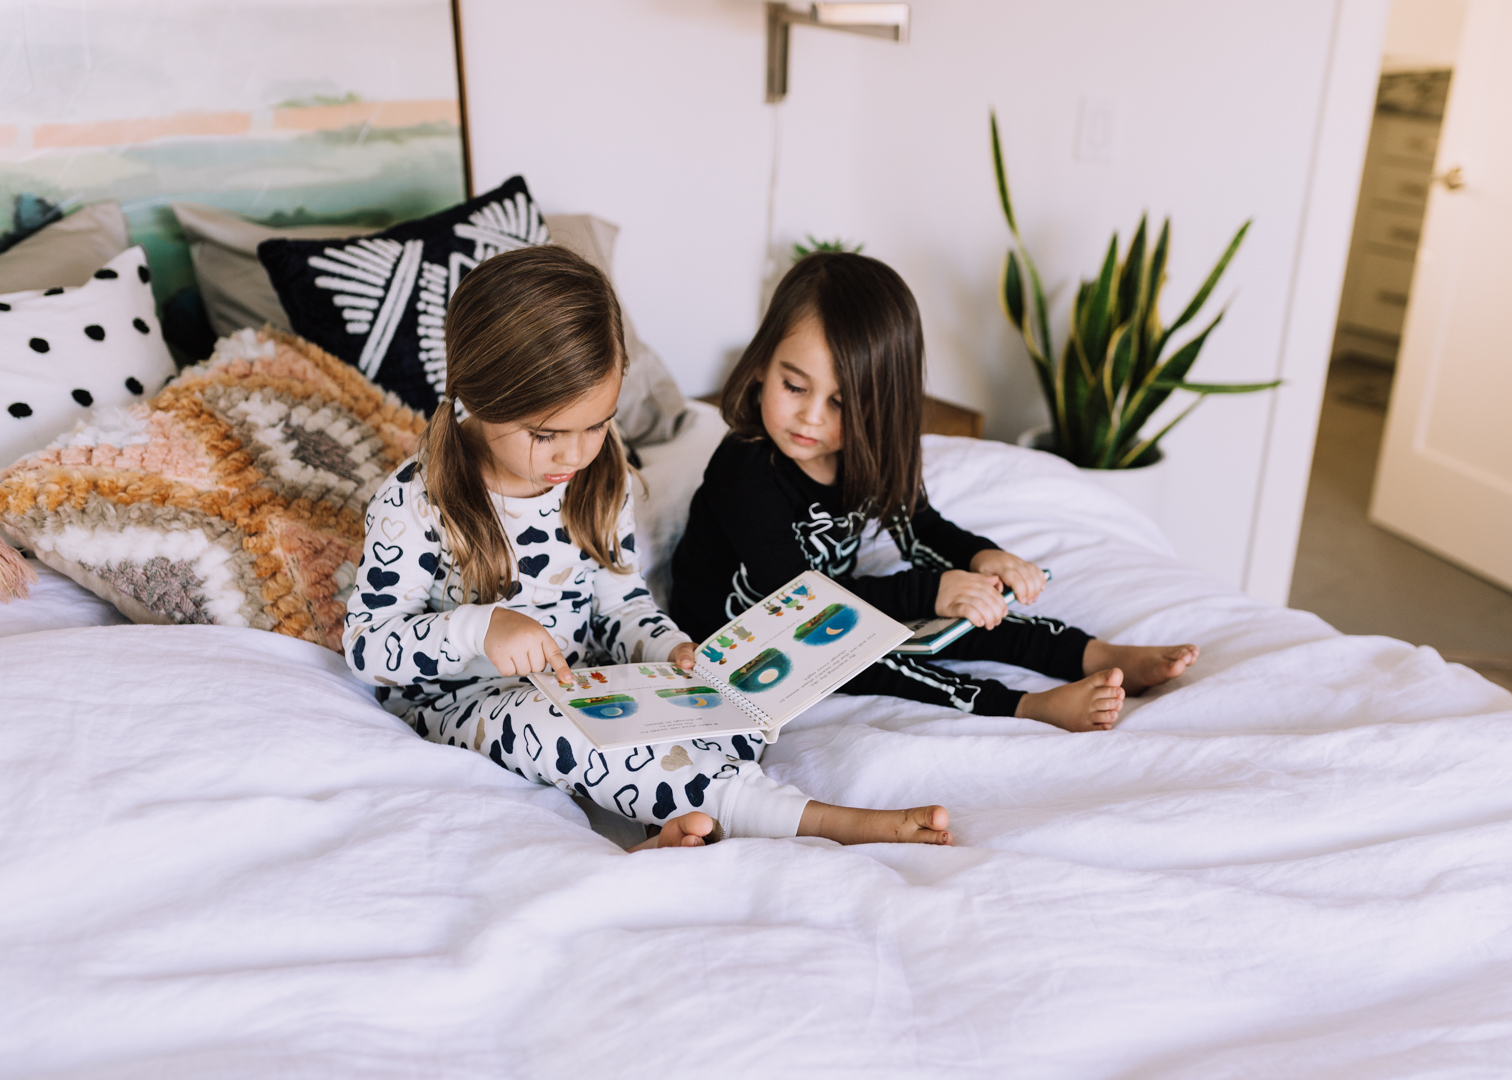 reading before bedtime with these two kiddos | thelovedesignedlife.com #mydreammattress #dreamcloudsleep #readwithdreamcloud